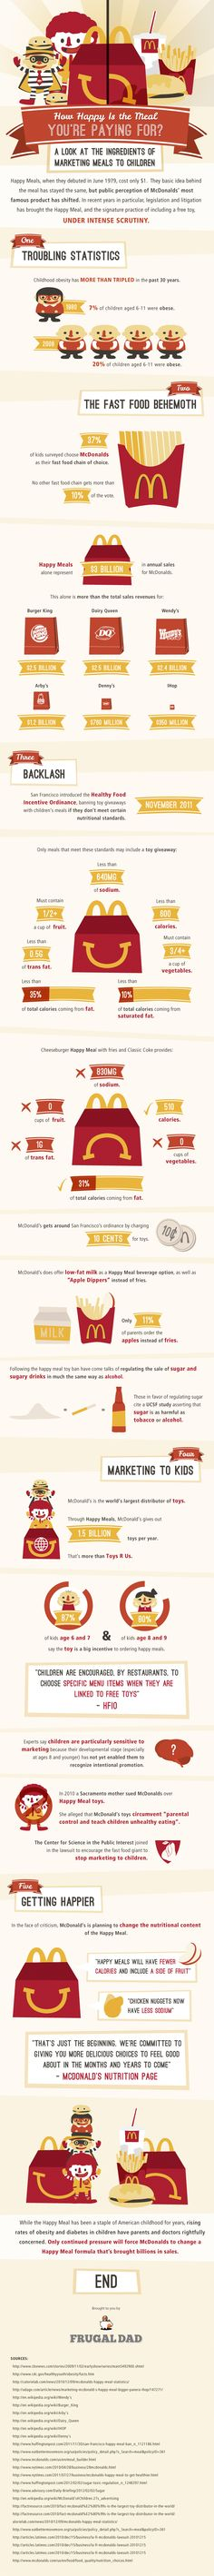 Happy Meals to kids every year?! (37 percent of kids say that #McDonald's is their favorite fast-food chain, too.)